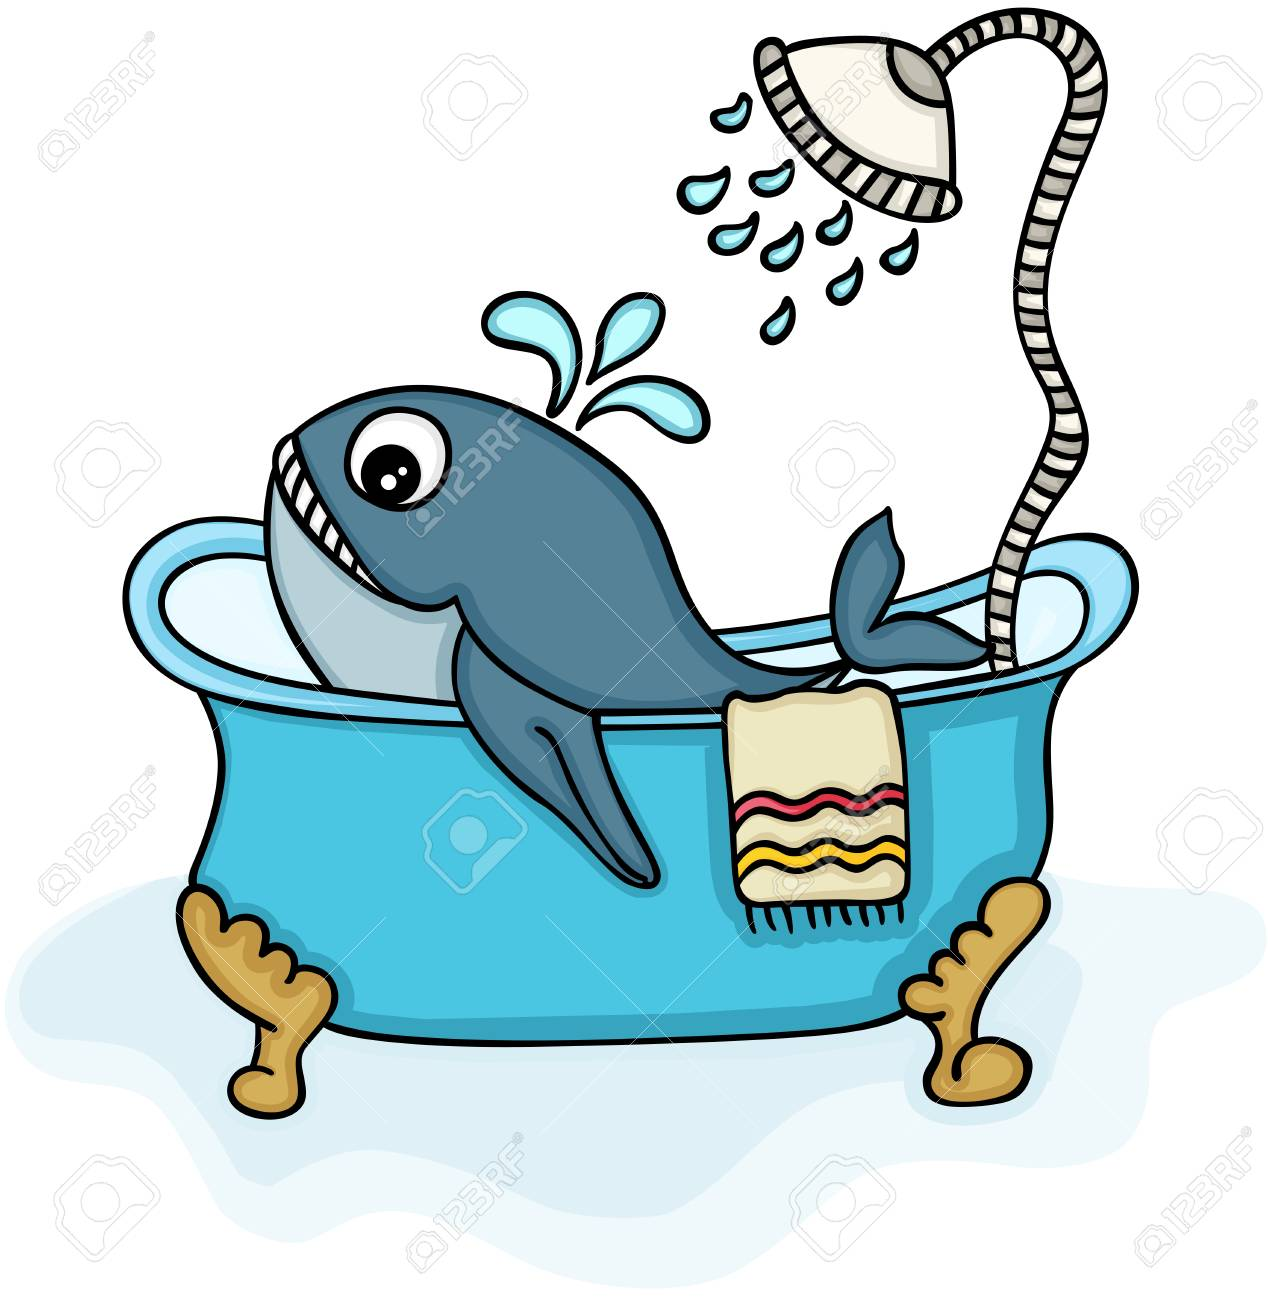 Little Whale In Bathtub With Shower Royalty Free Cliparts, Vectors ...